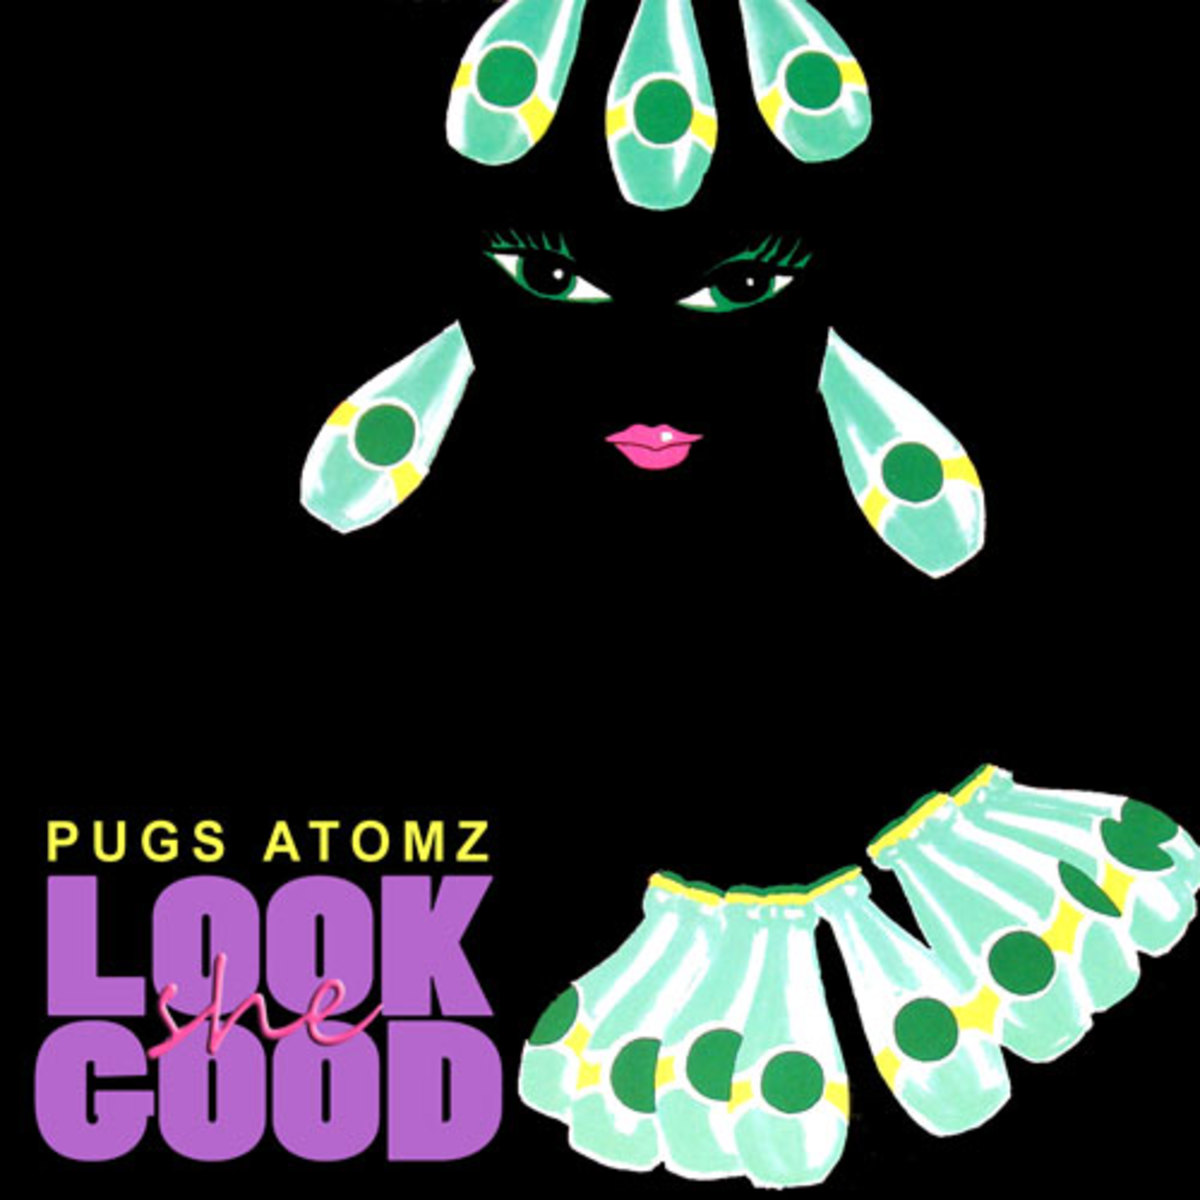 pugsatomz-shelookgood.jpg